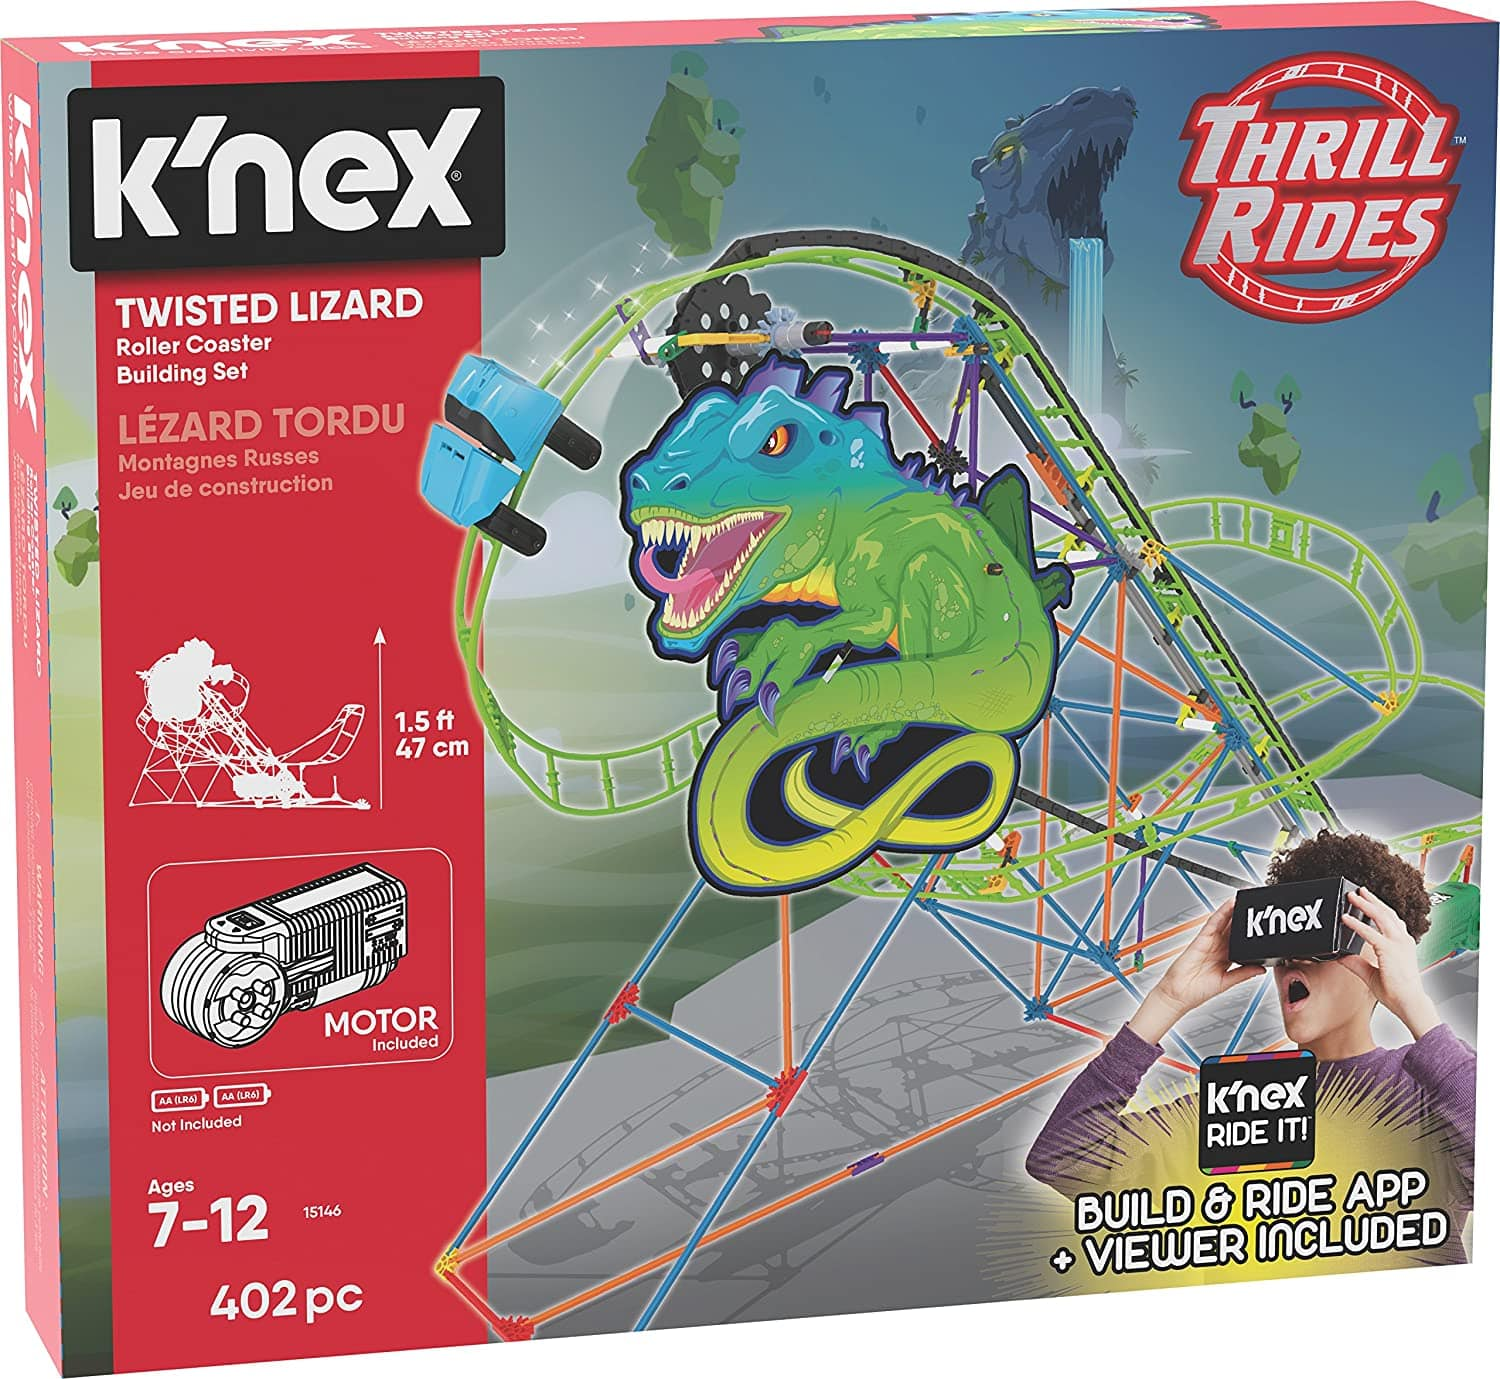 K'NEX Thrill Rides – Twisted Lizard Roller Coaster Building Set with Ride It! App – 402 Piece $9.78 @Amazon